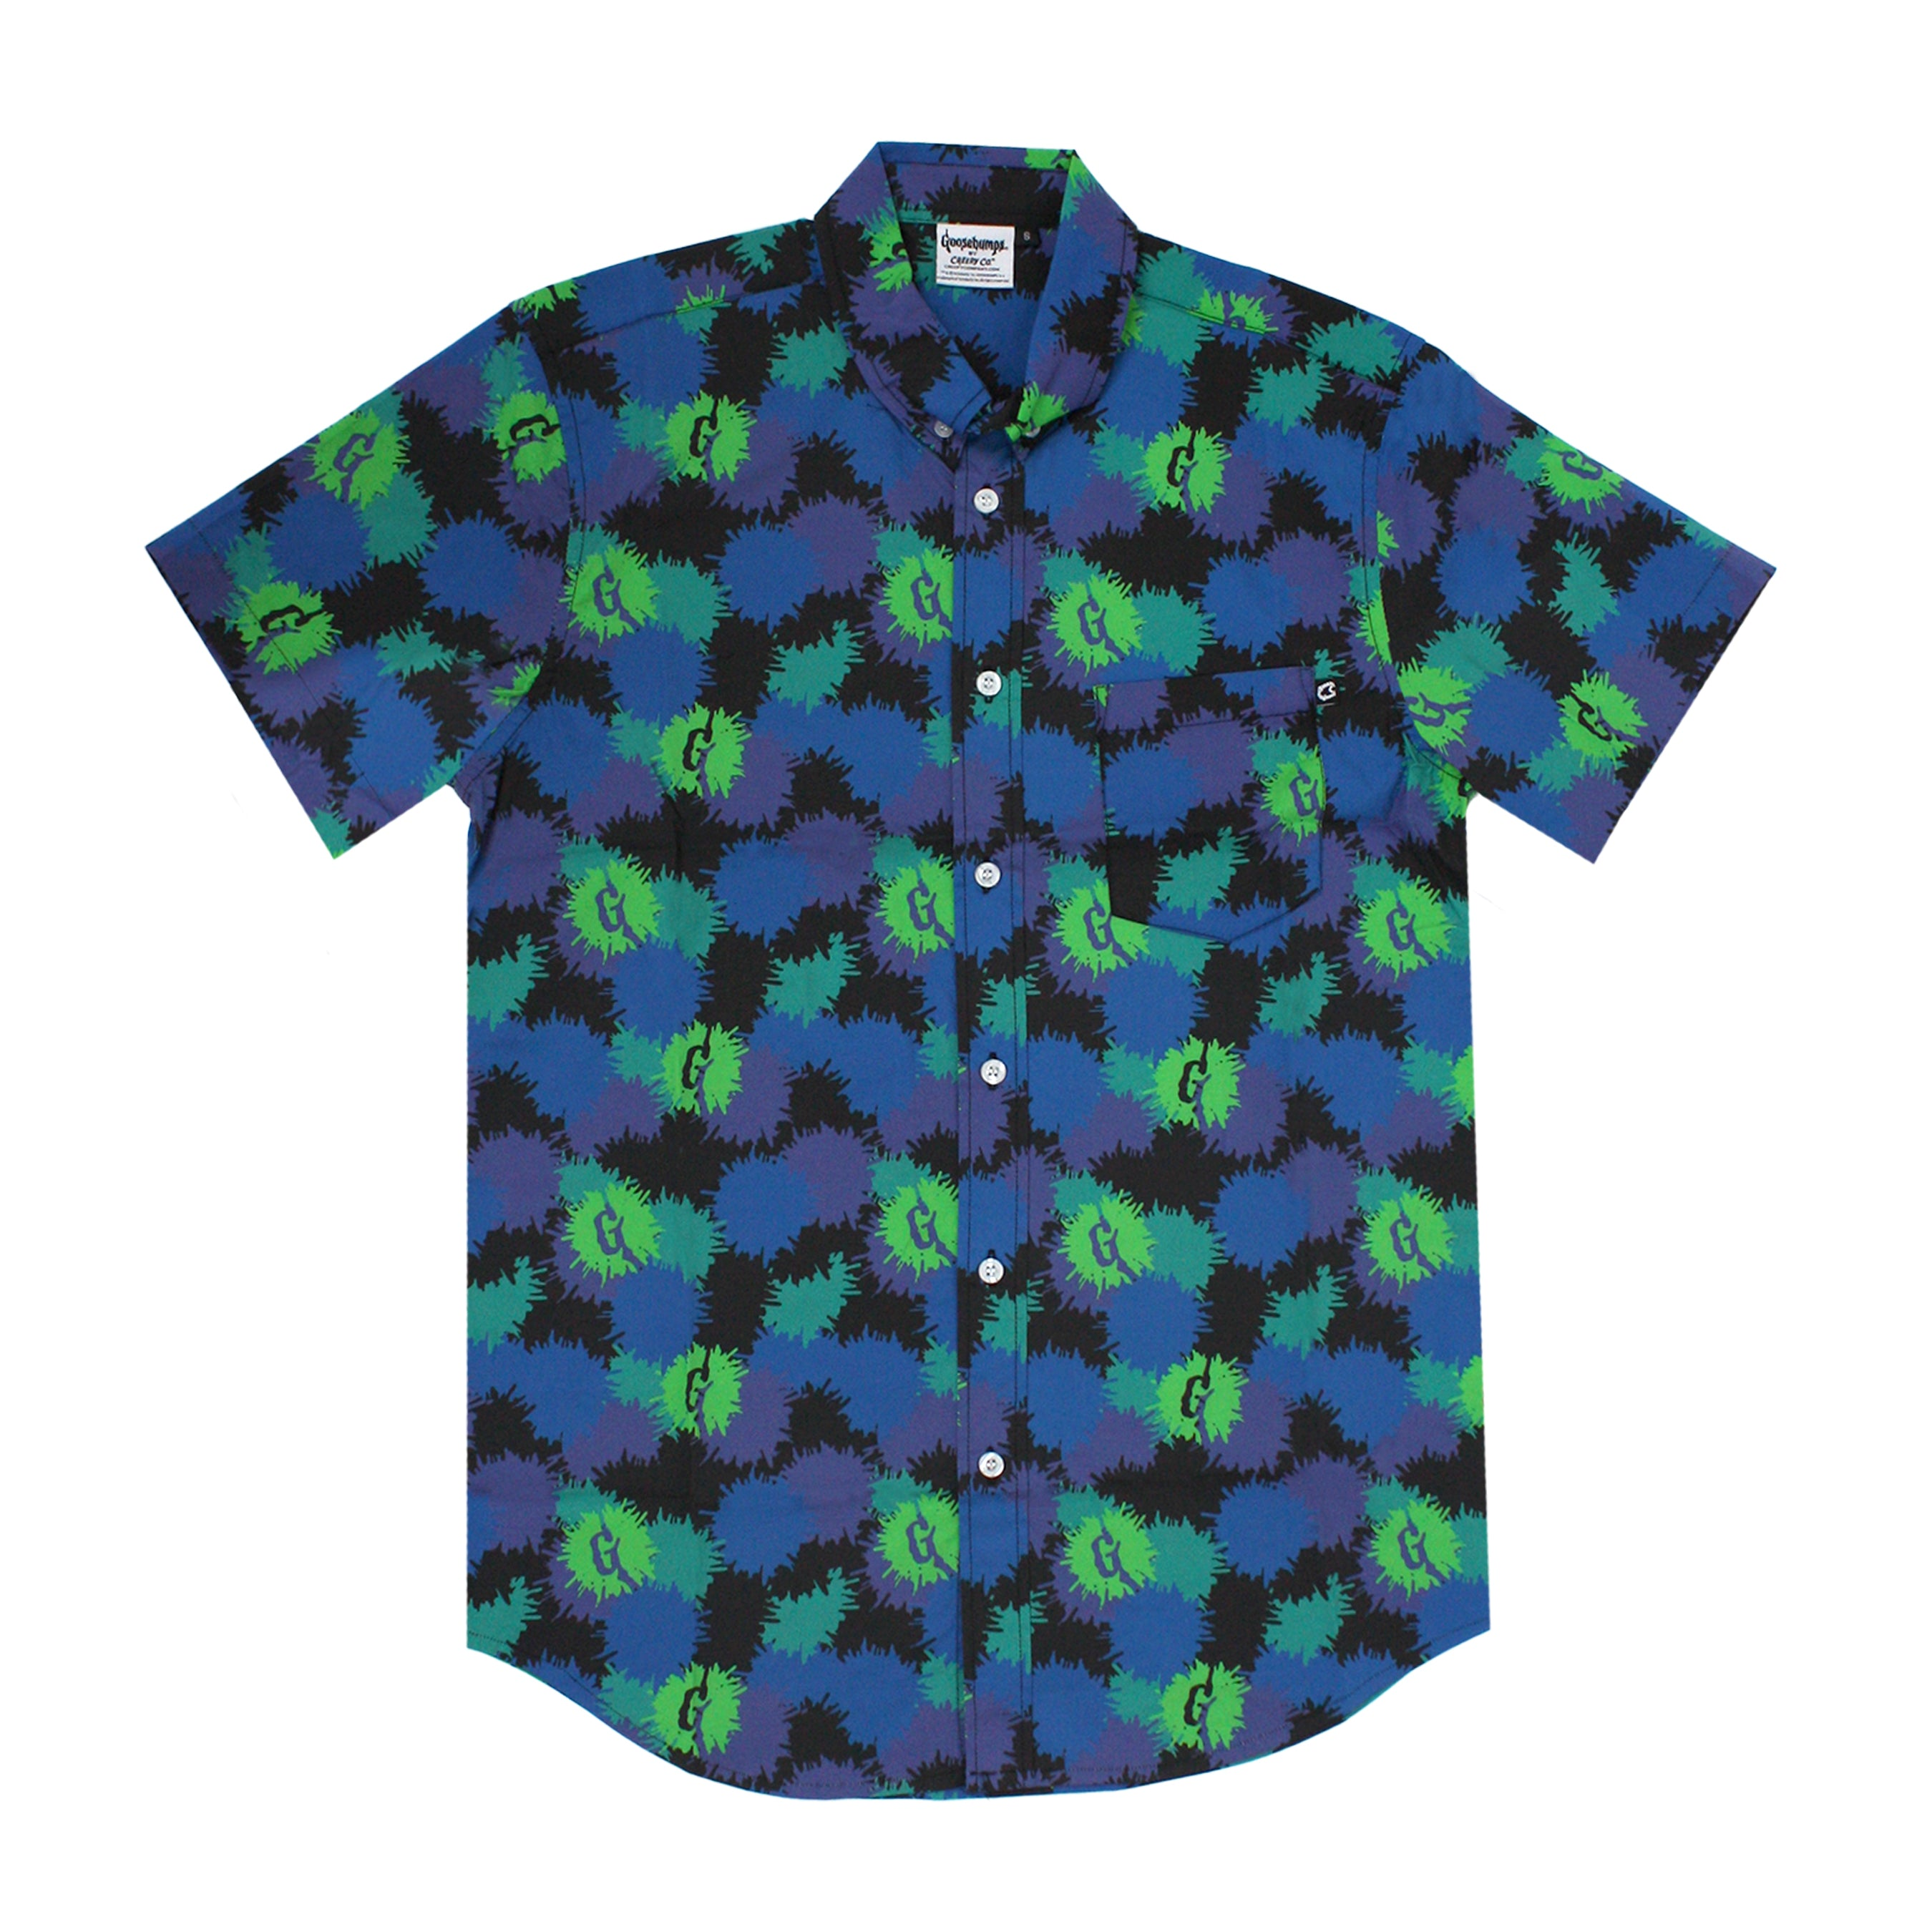 Goosebumps® SPLAT! Button-Up Shirt